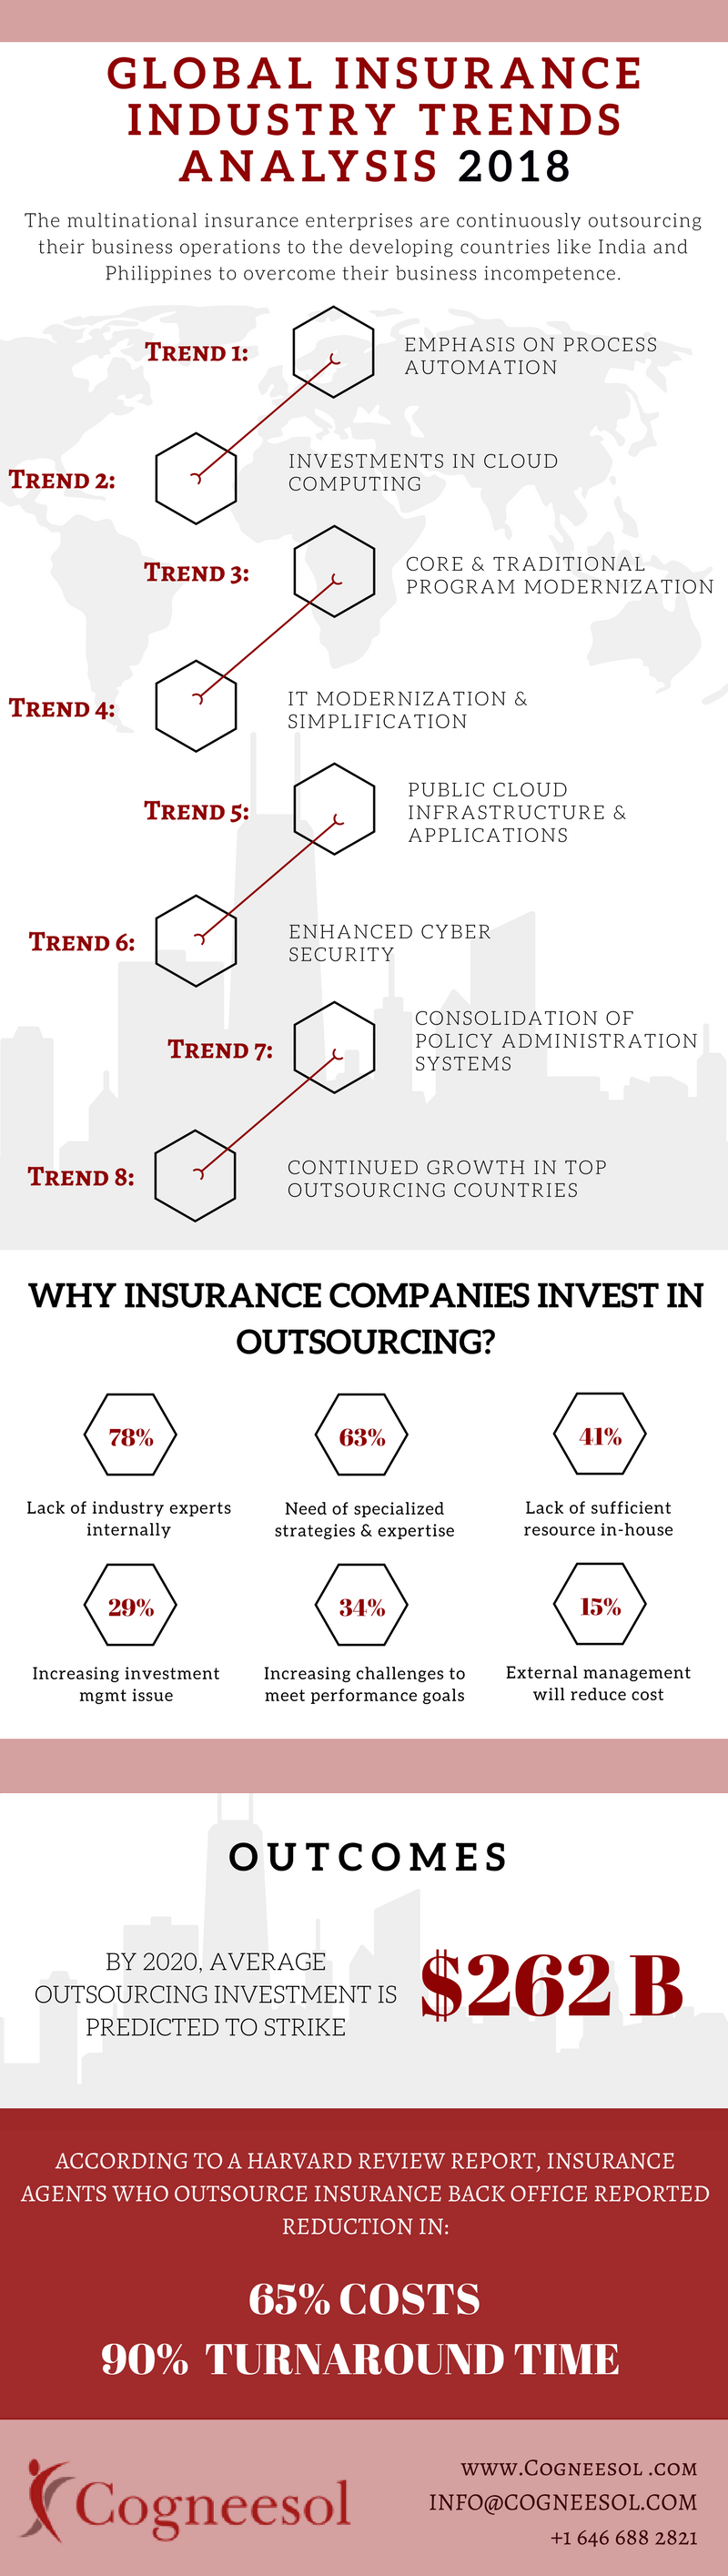 Global Insurance Industry Trends Analysis 2018 Infographic